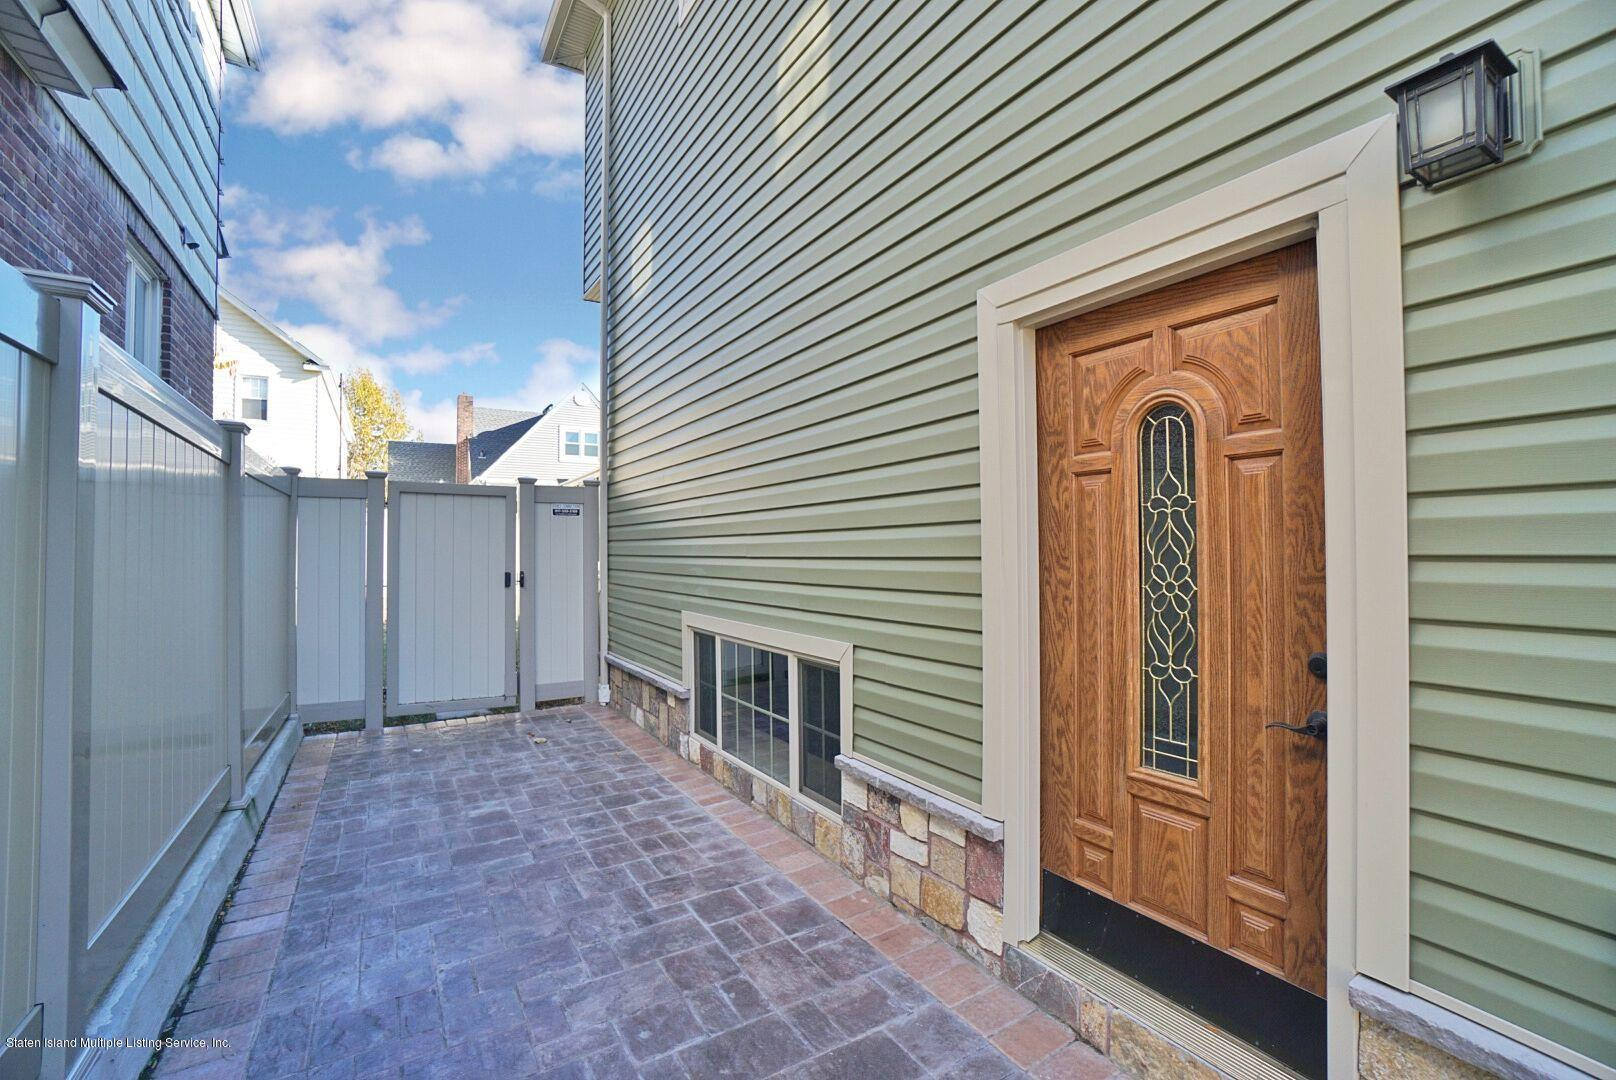 Single Family - Detached 165 Woolley Avenue  Staten Island, NY 10314, MLS-1128875-4